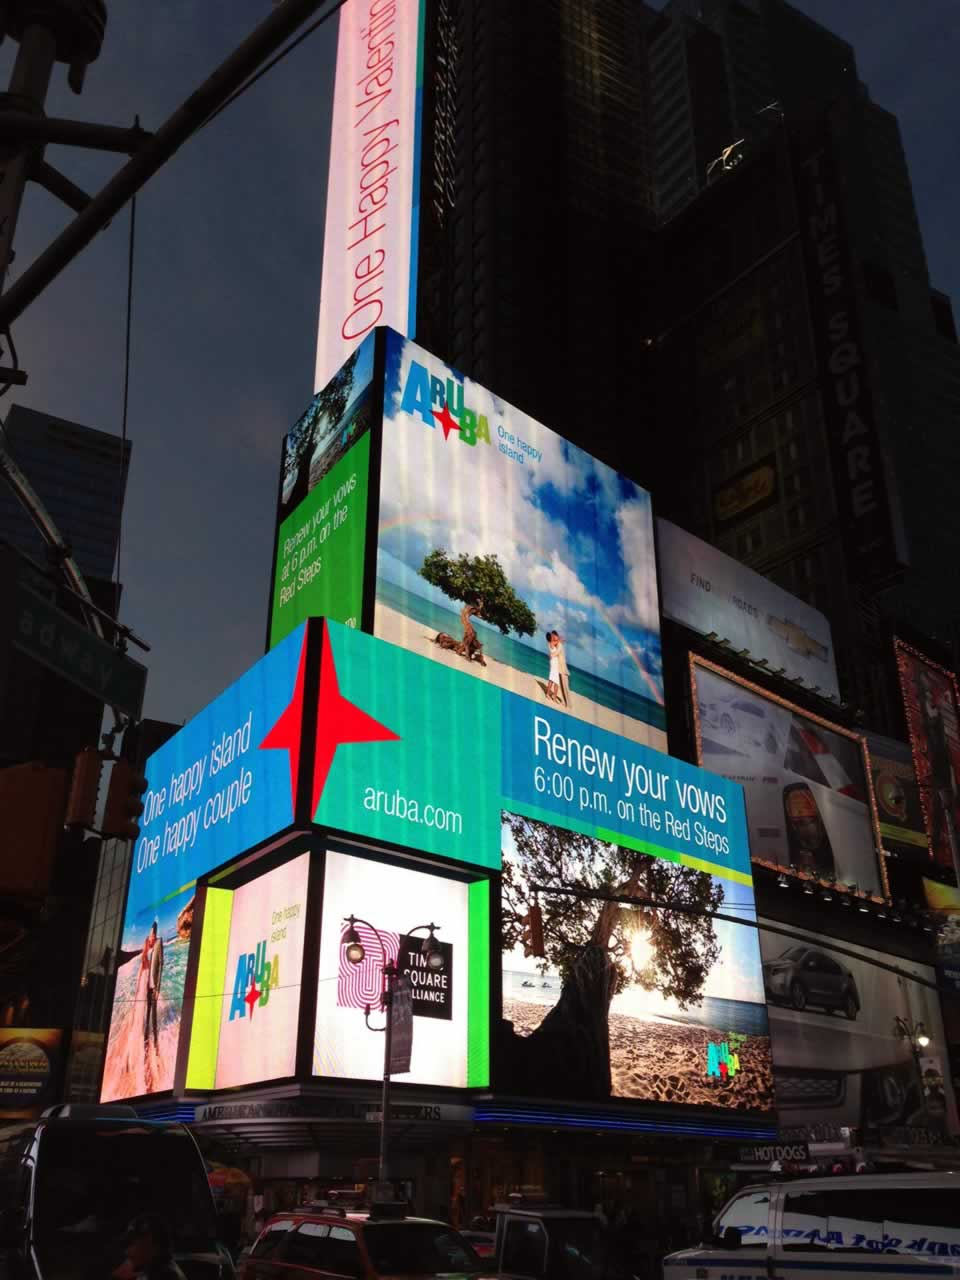 Outdoor Advertising Campaign of Aruba Tourism in Times Square NYC